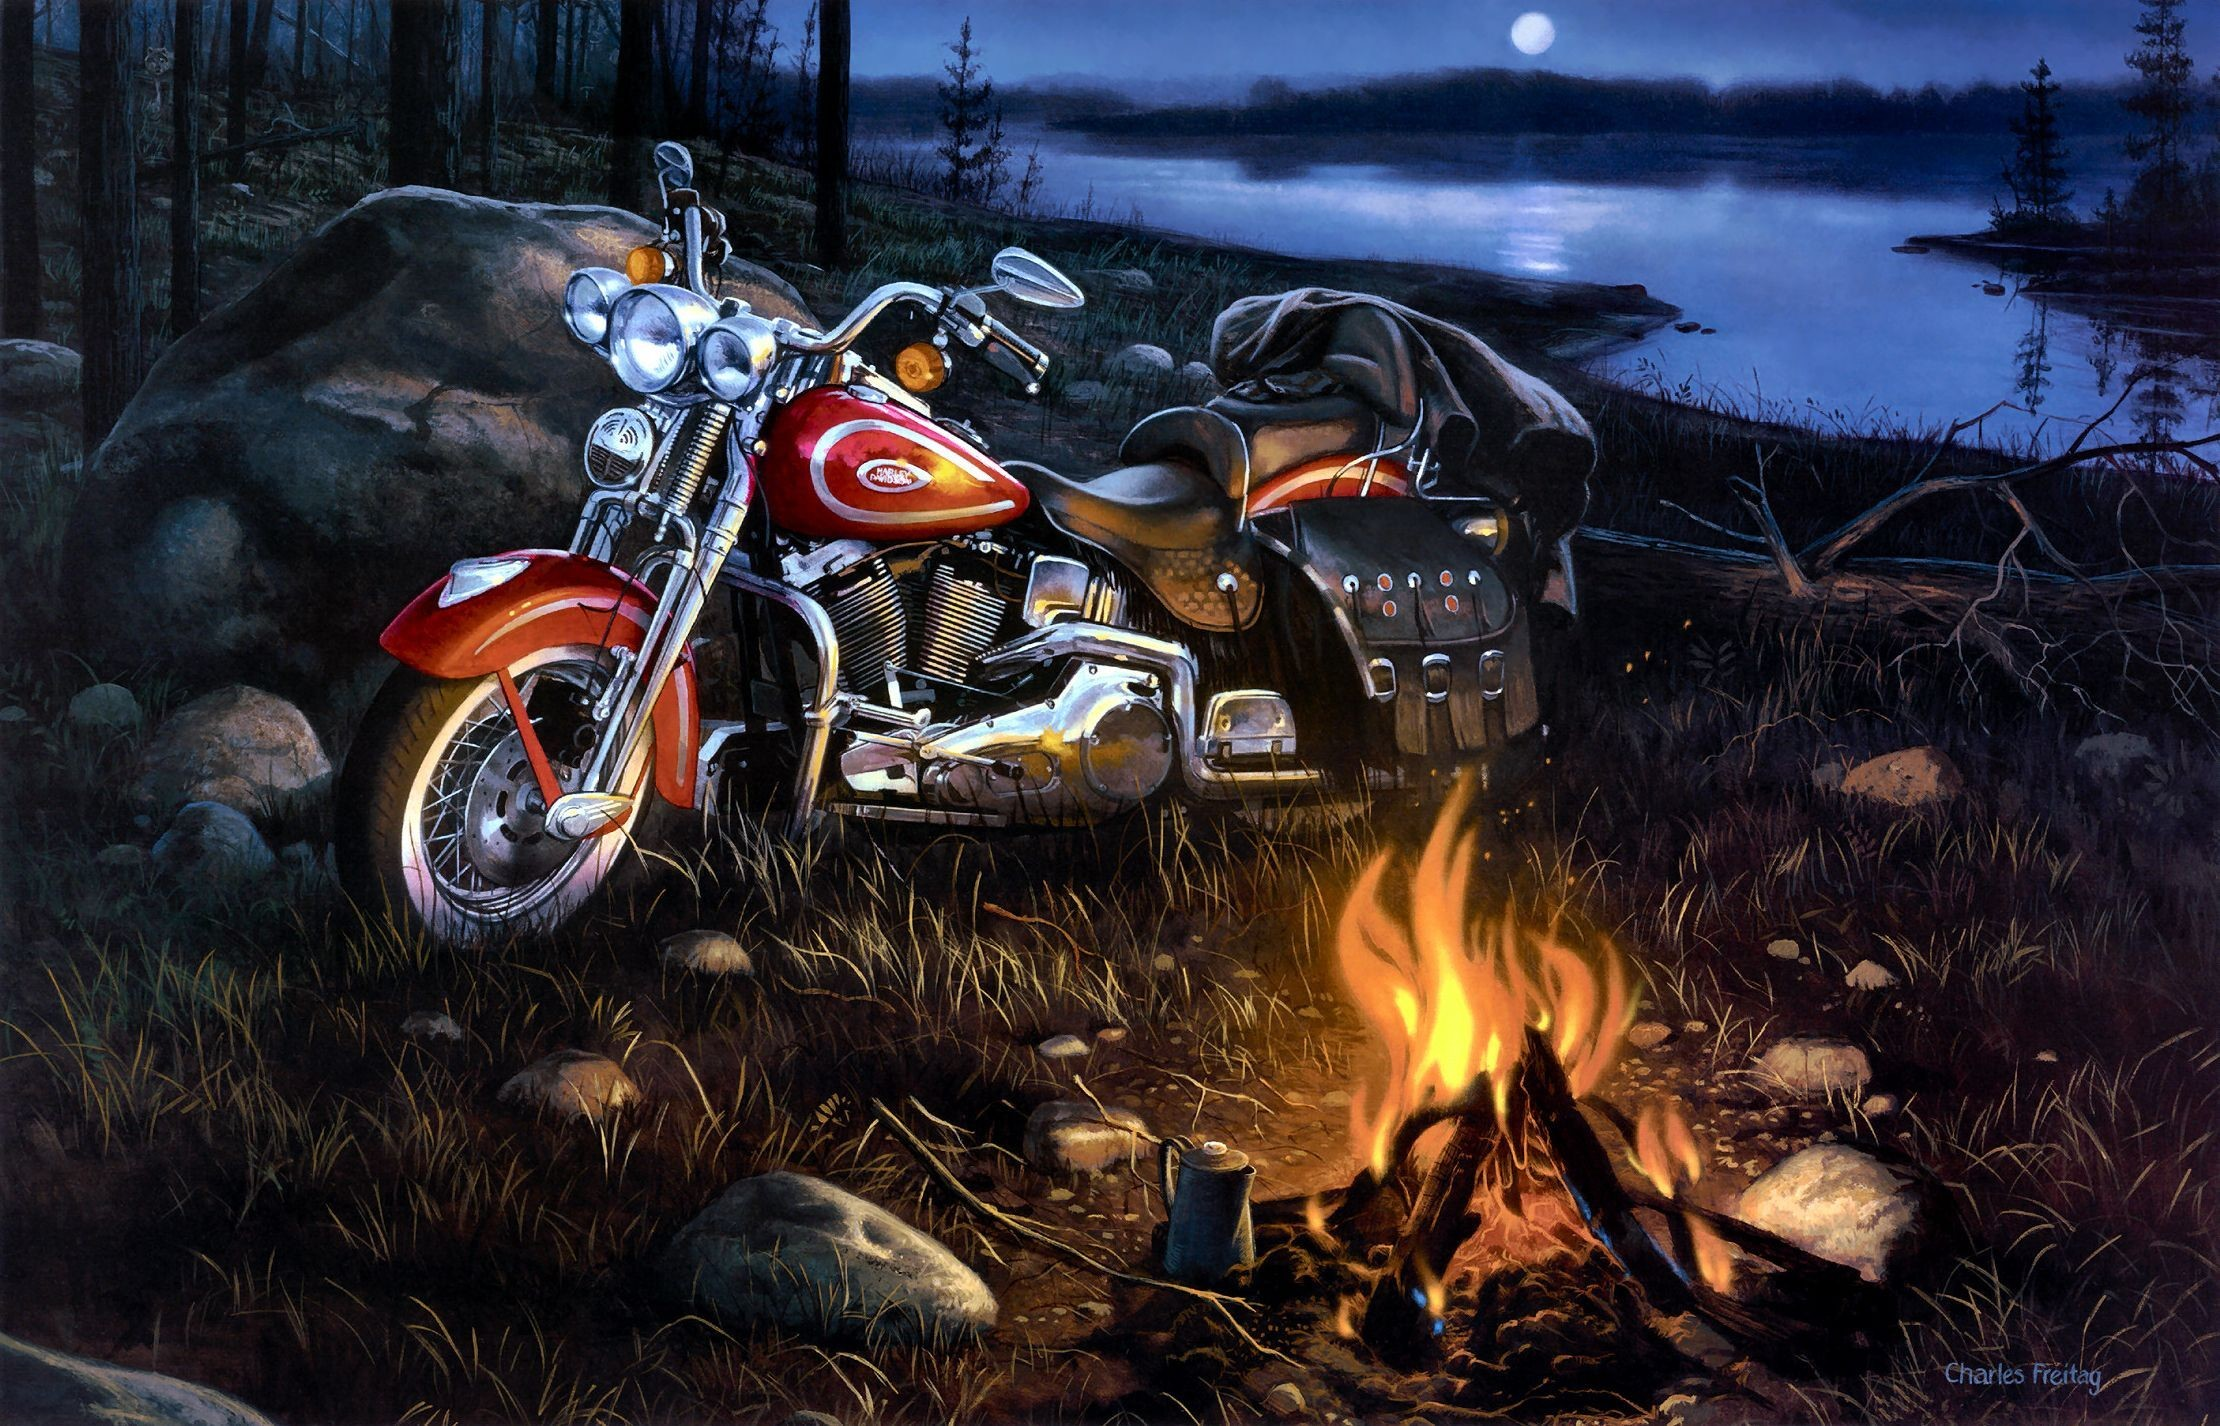 2220x1426 Harley Davidson Wallpaper Mobile #ERY